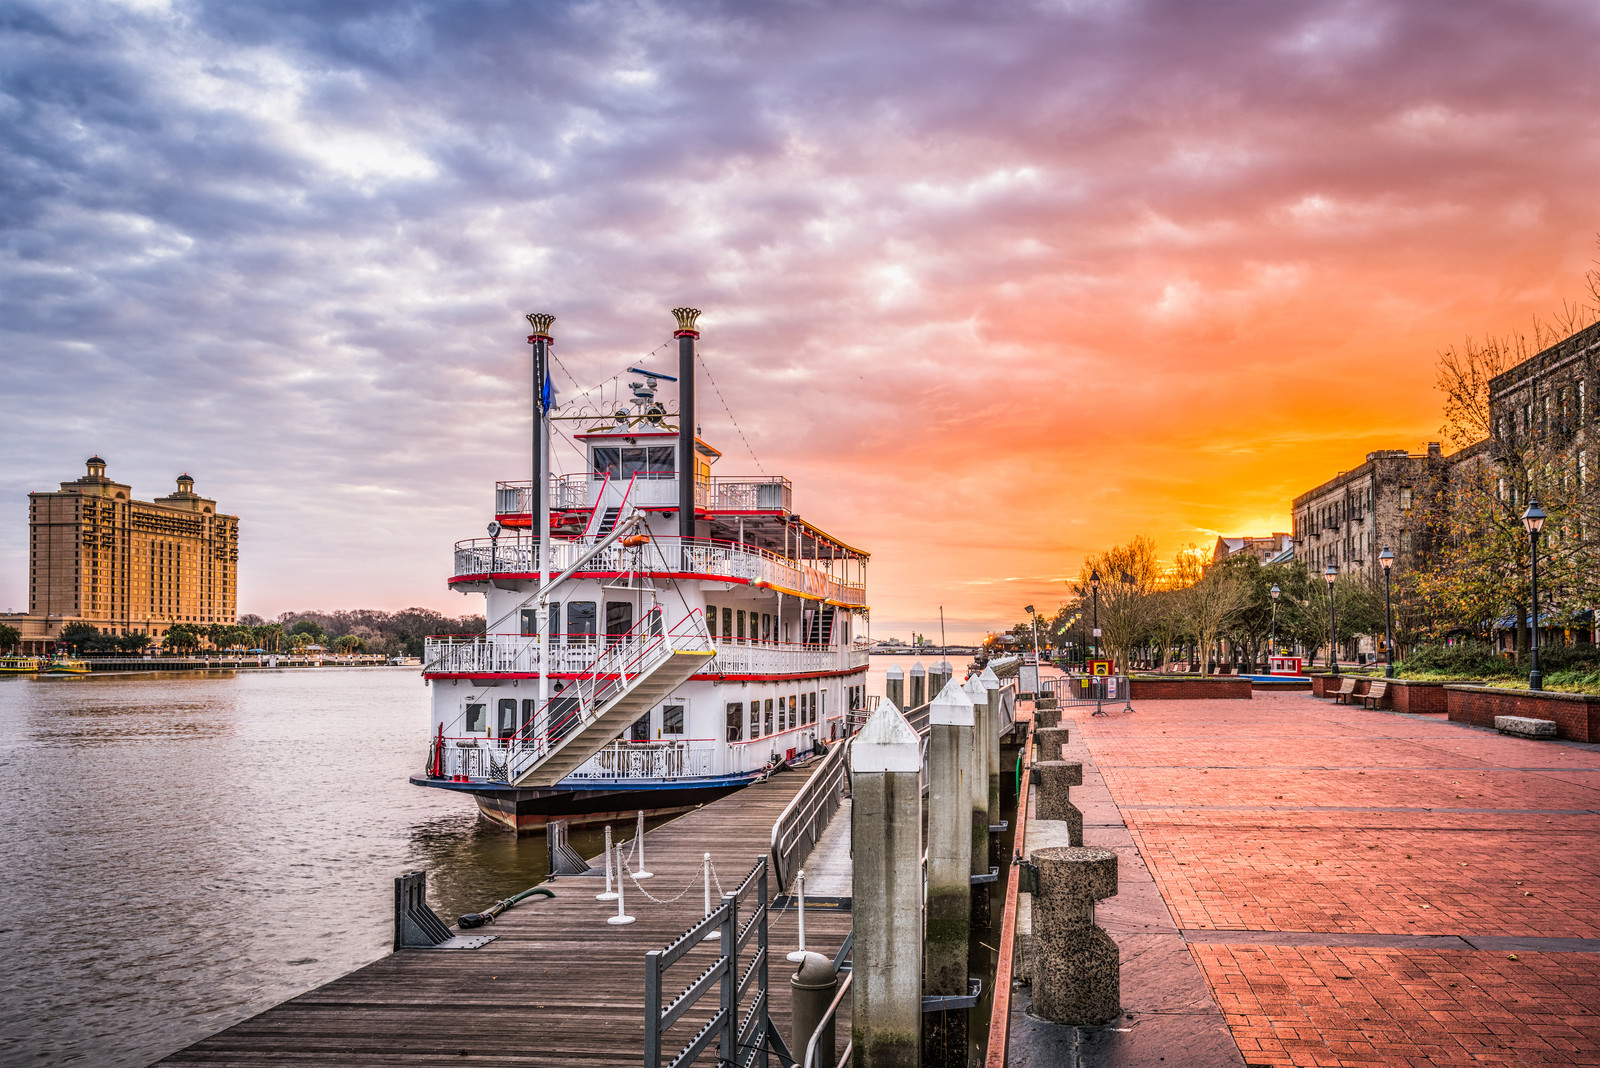 Places to Retire in Georgia -Savannah, georgia, riverfront with a paddleboat docked alongside the promenade at sunrise.